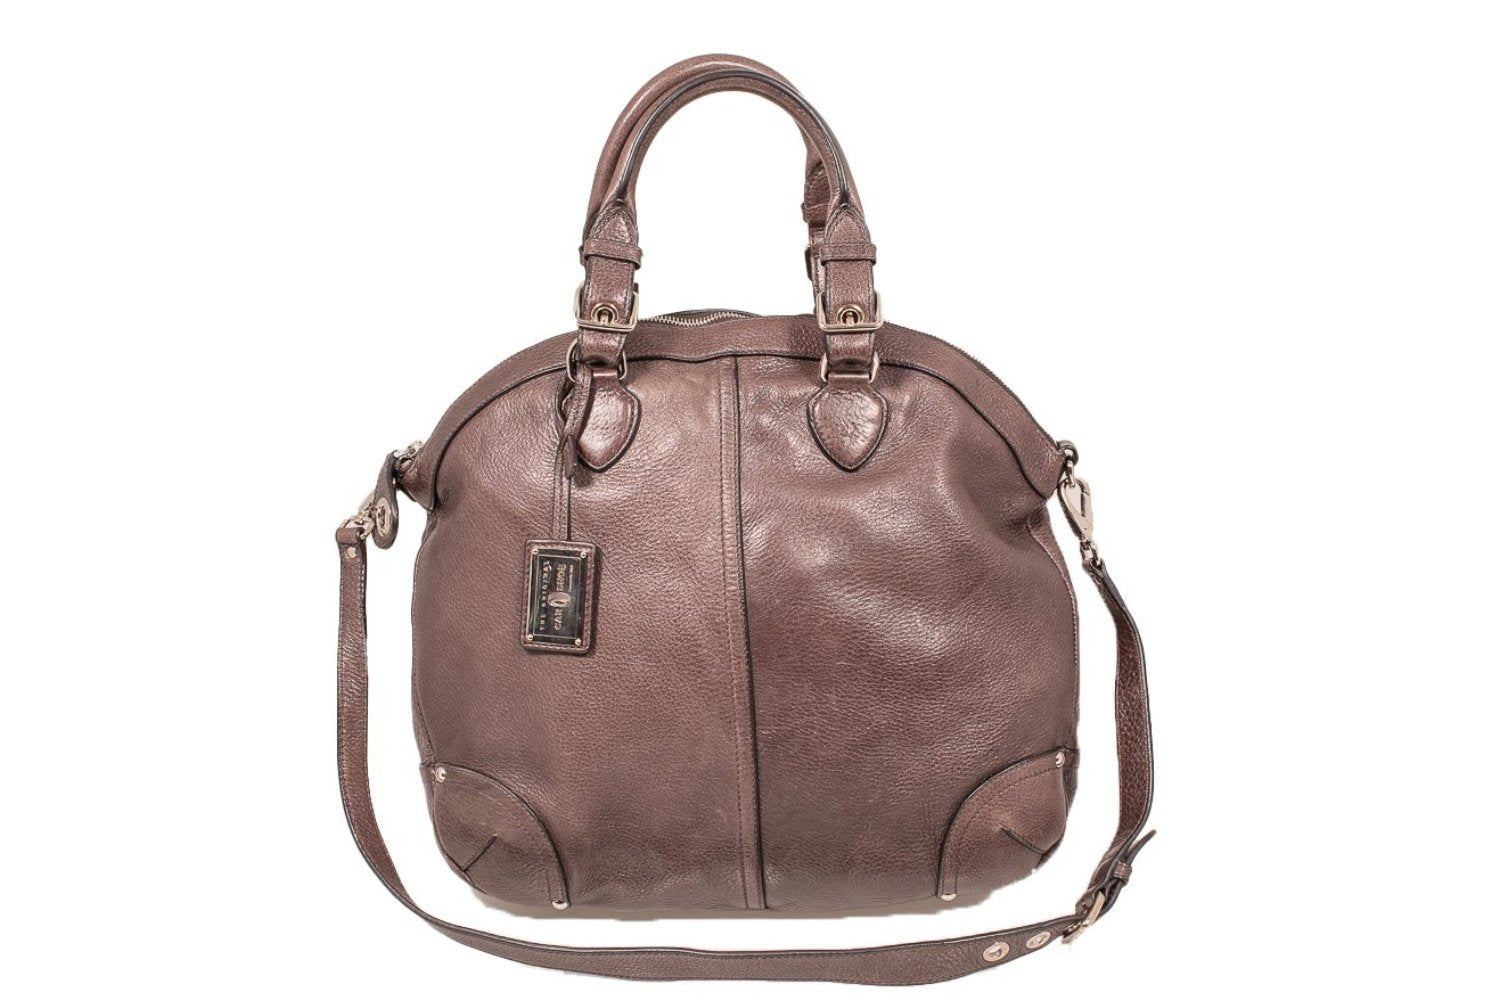 Car Shoe Authentic Brown Leather Big Hobo Sack Shoulder Cross Body Bag ... 878b6f8b5aed0